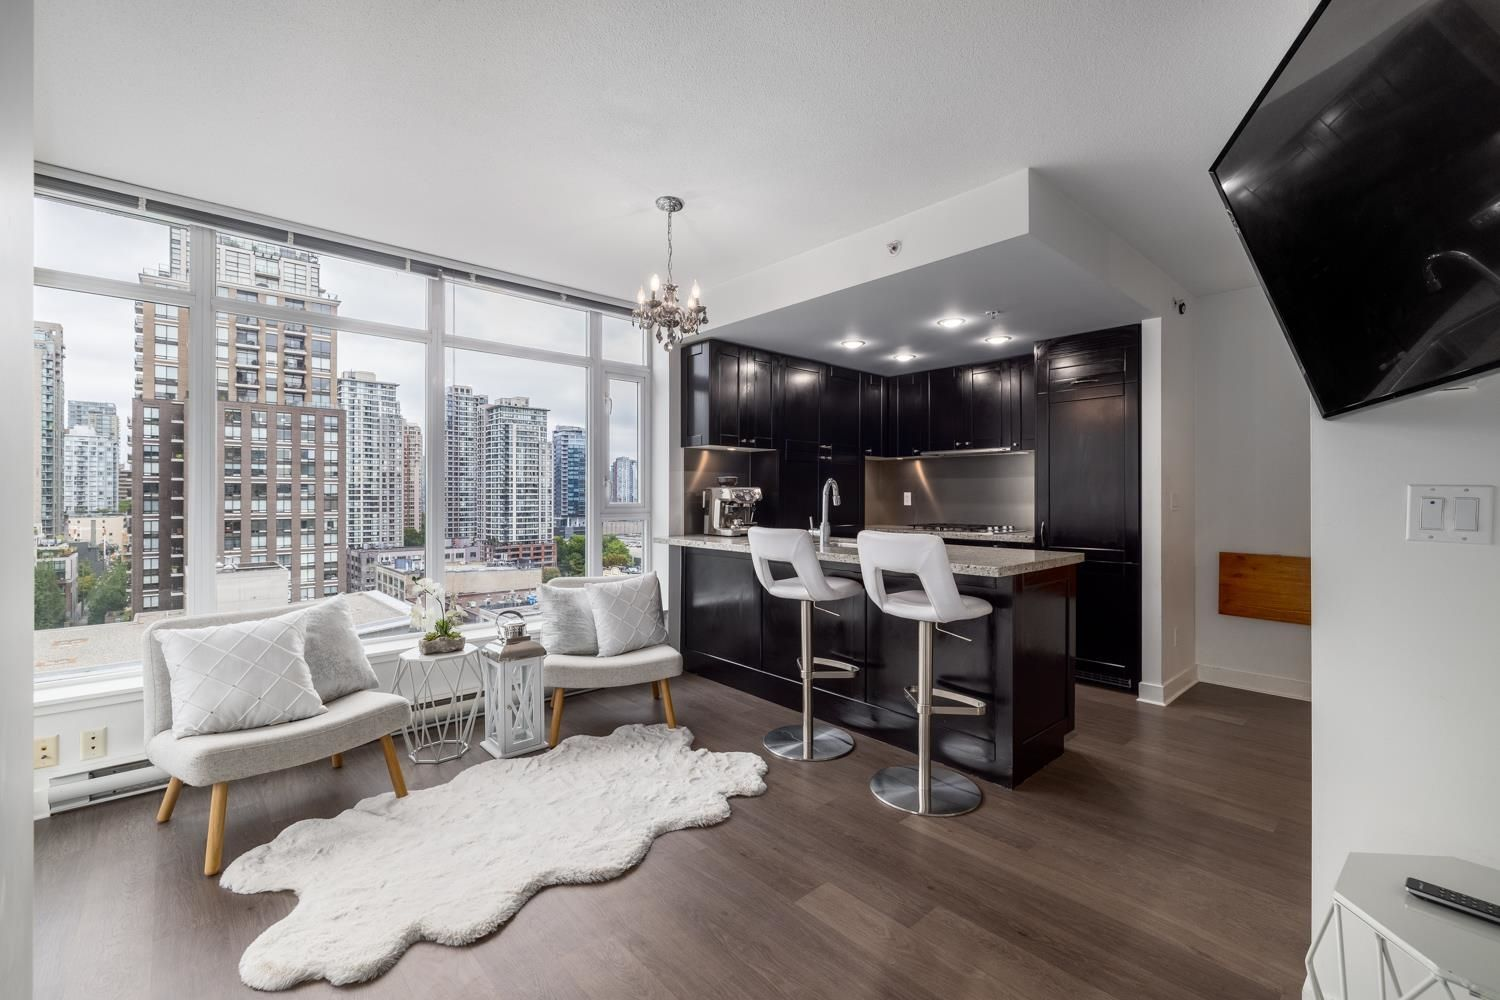 Main Photo: 1302 1133 HOMER STREET in Vancouver: Yaletown Condo for sale (Vancouver West)  : MLS®# R2613033